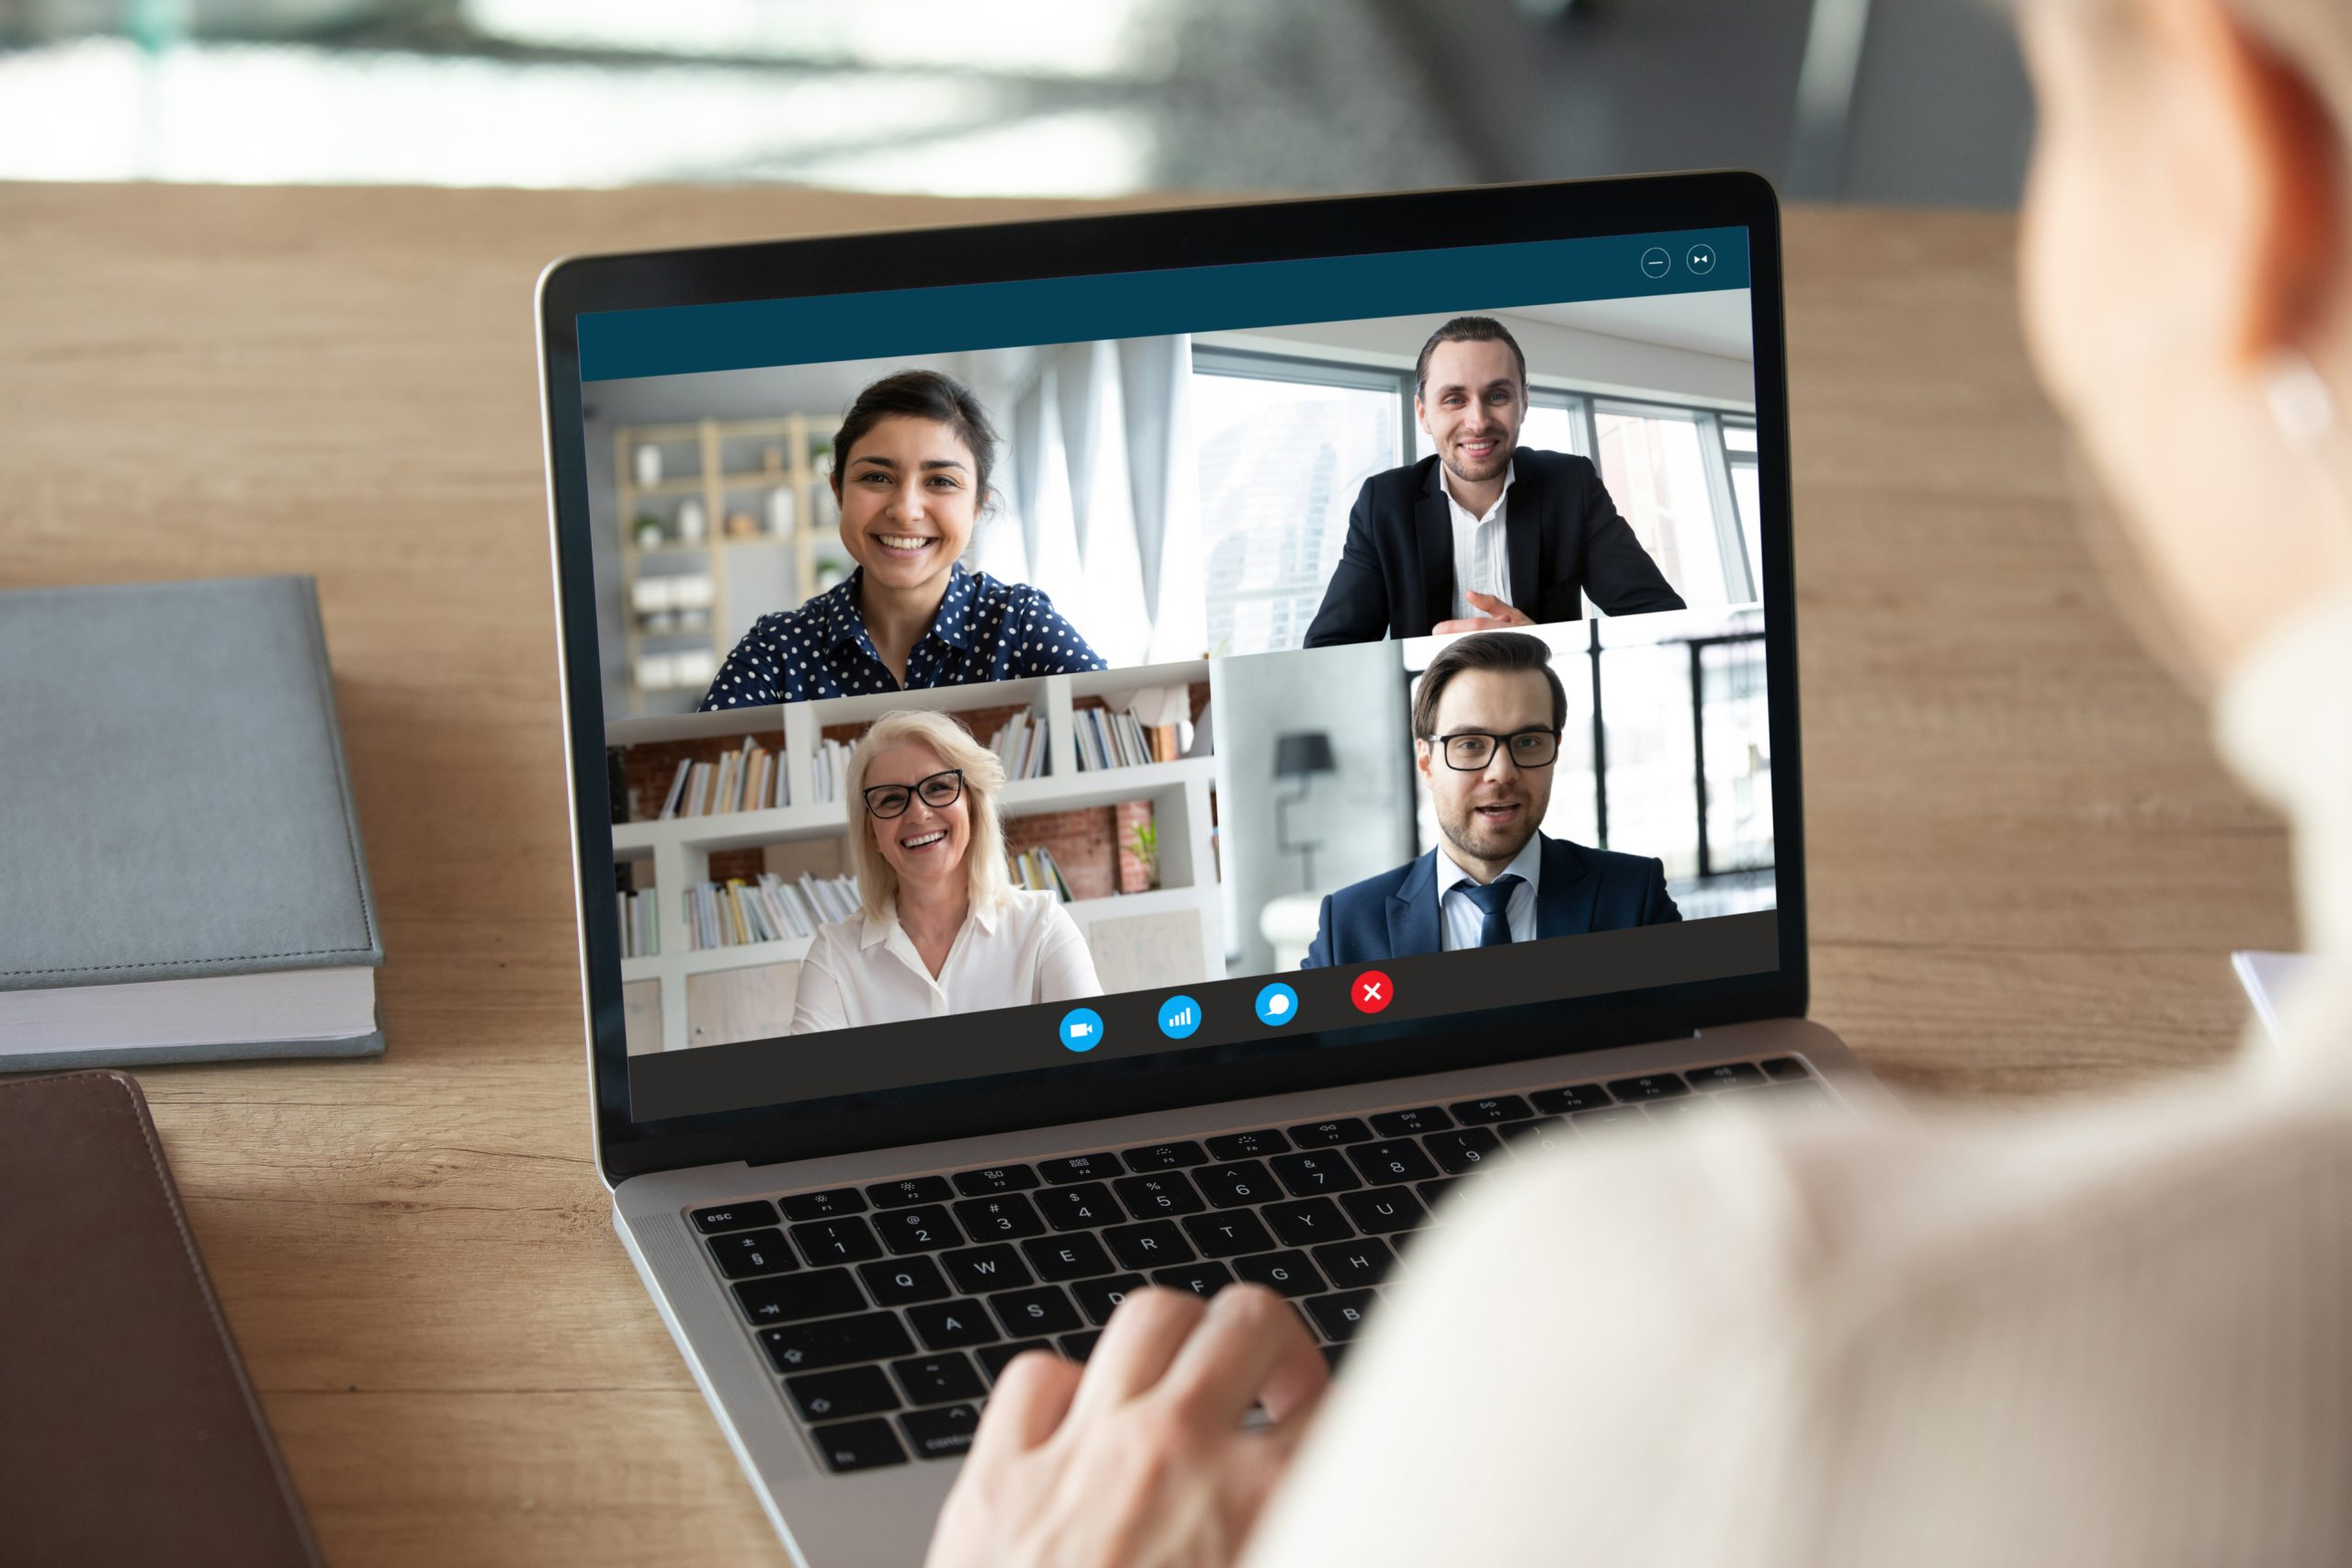 Computer screen with video conference